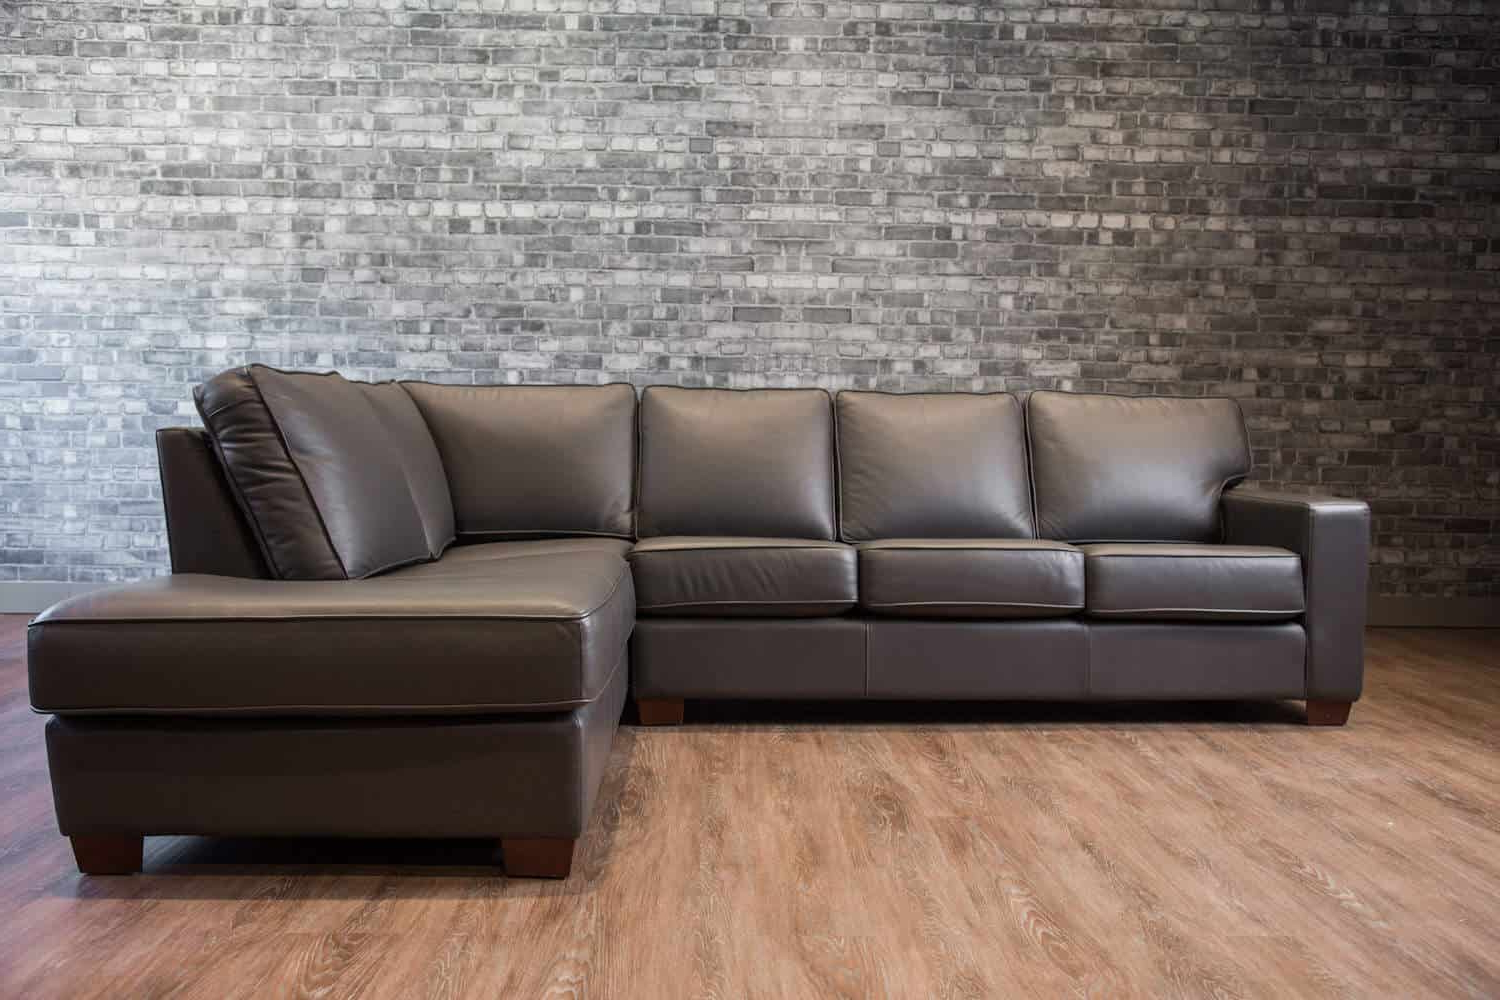 Canada's Boss Leather Sofas And Furniture (View 3 of 20)